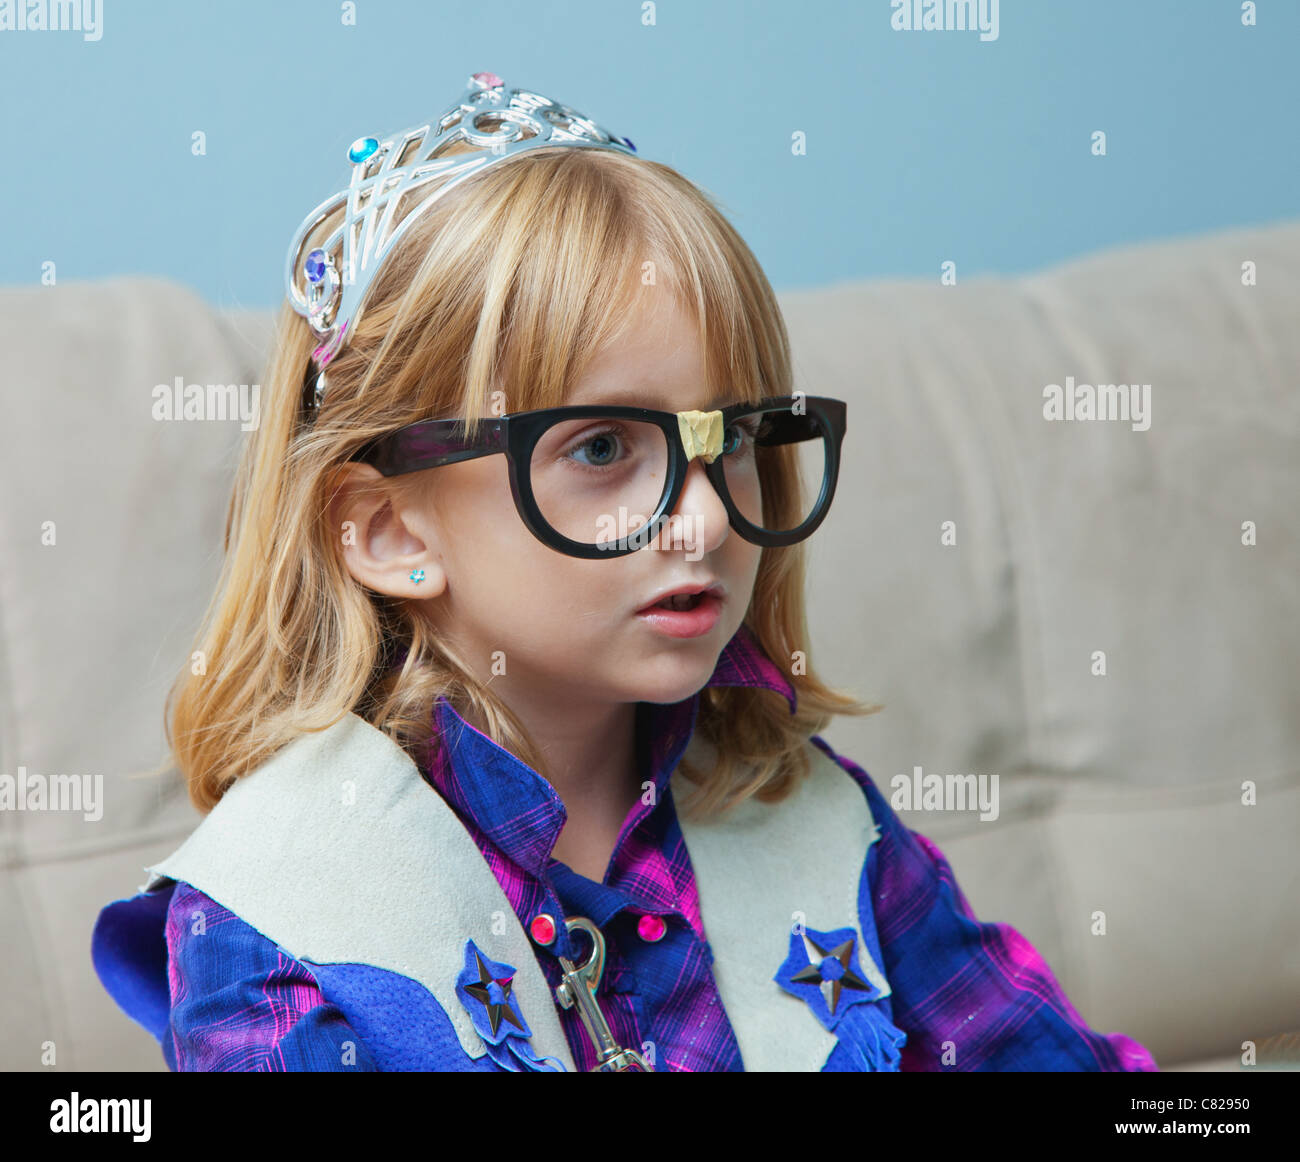 Little girl with nerd black glasses and tiara. - Stock Image